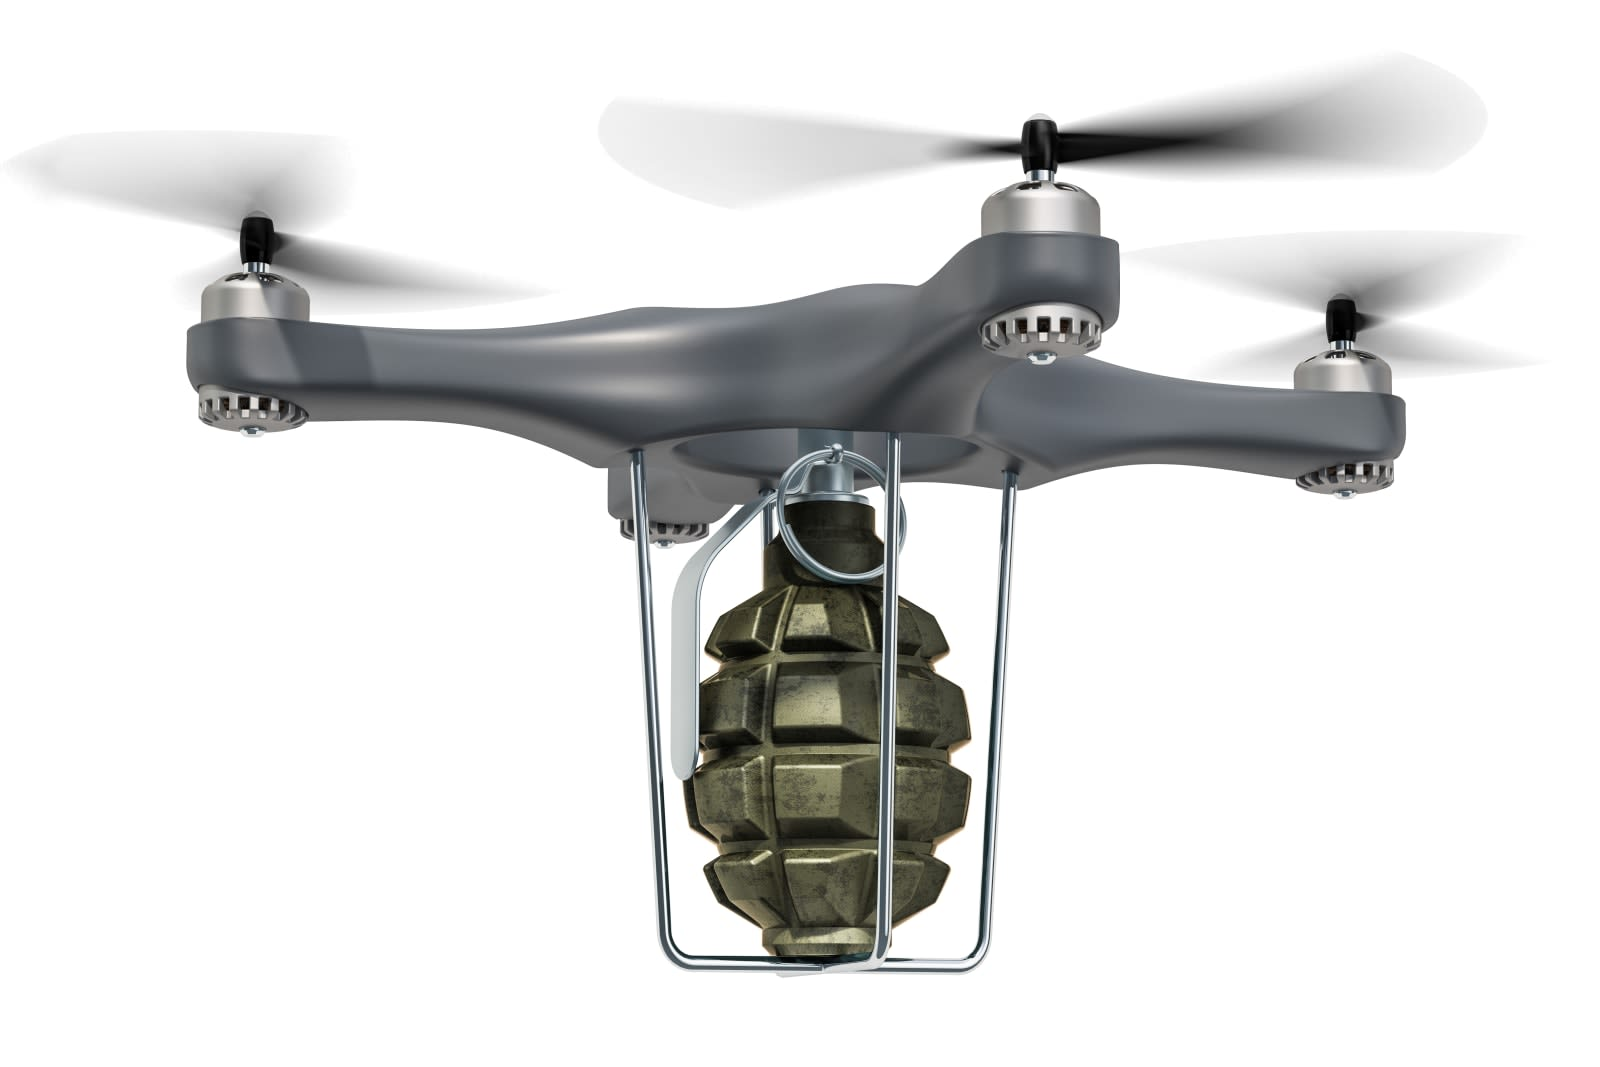 FAA: Please don't weaponize your drone